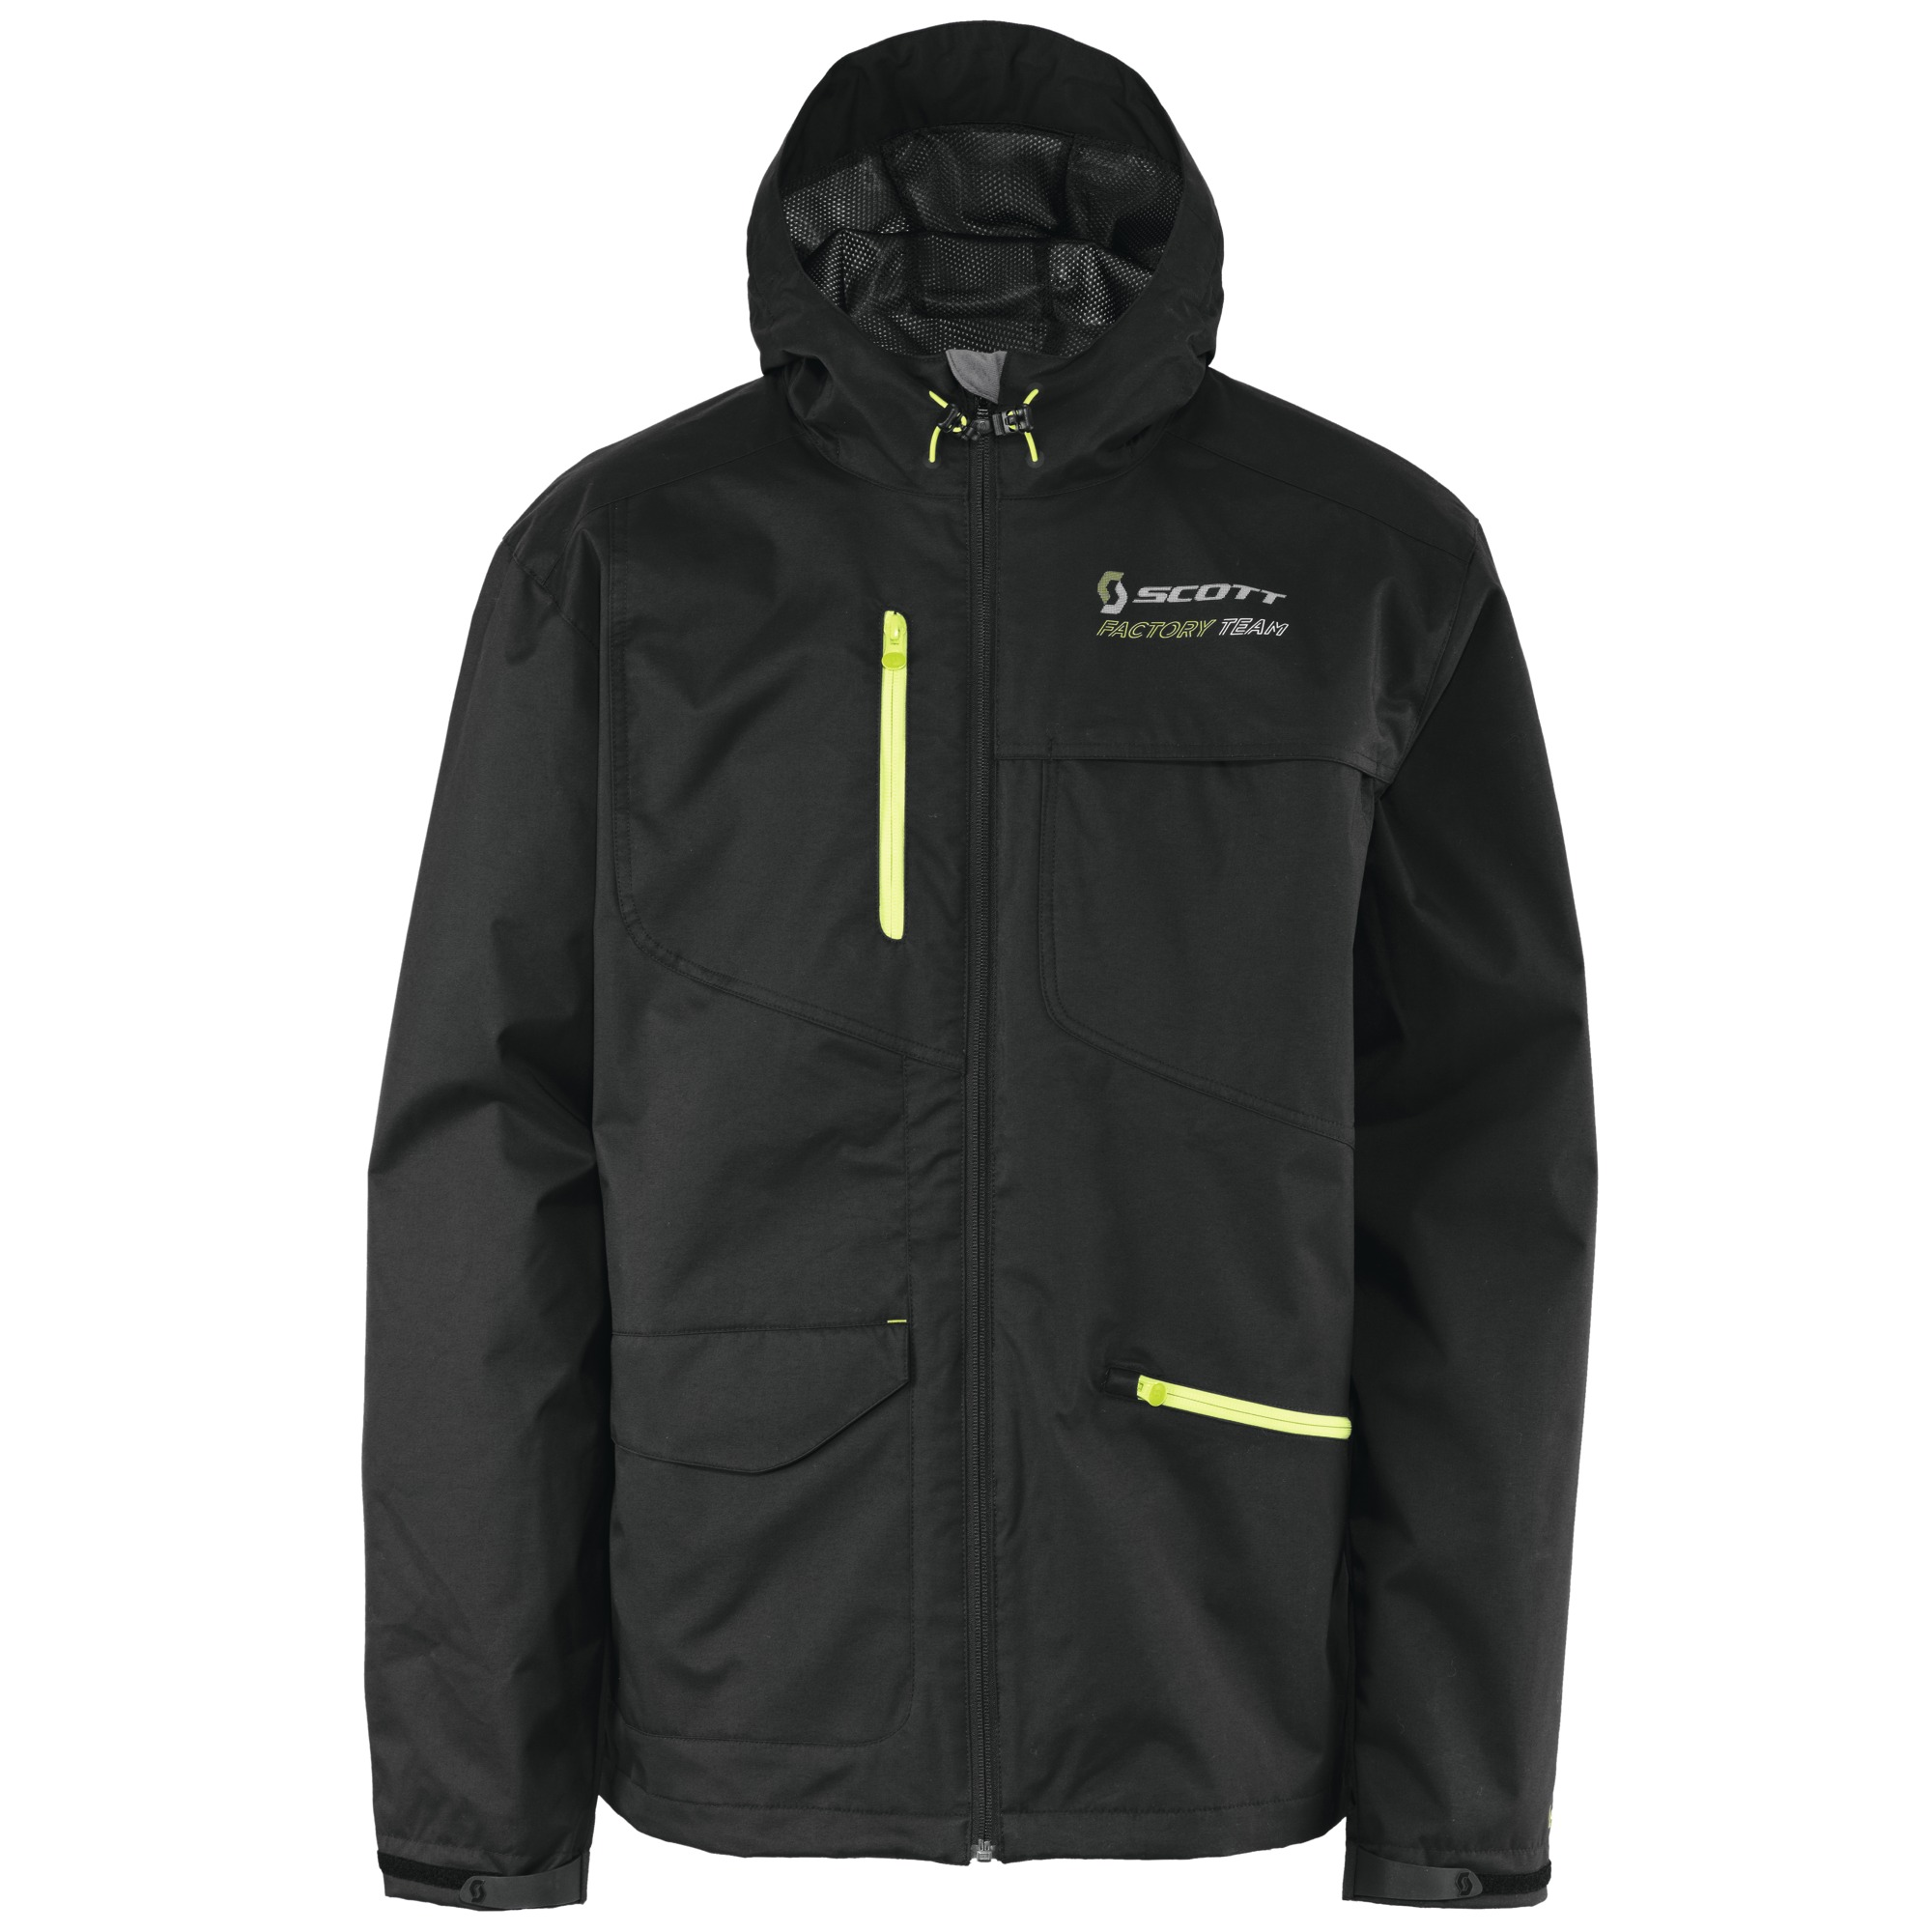 SCOTT FACTORY TEAM JACKET